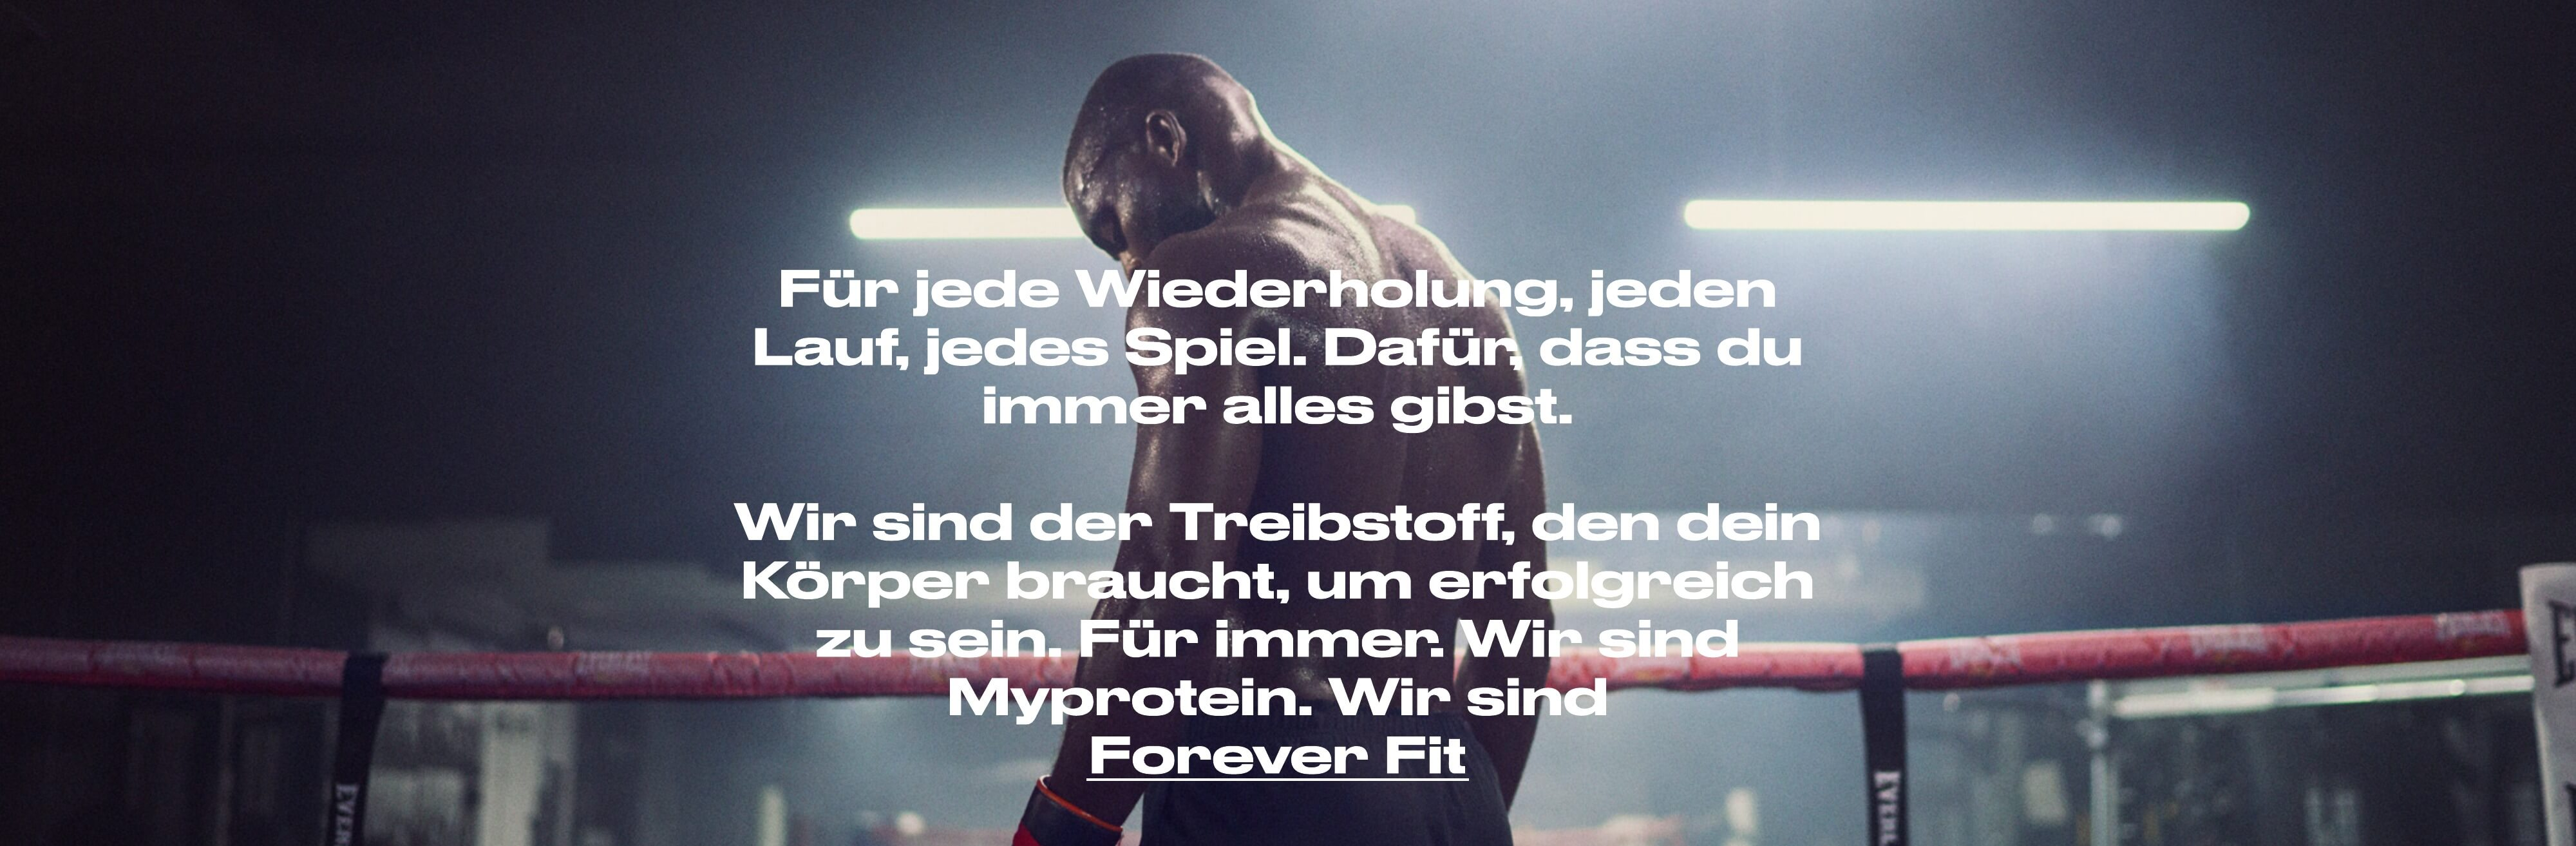 Myprotein Forever Fit